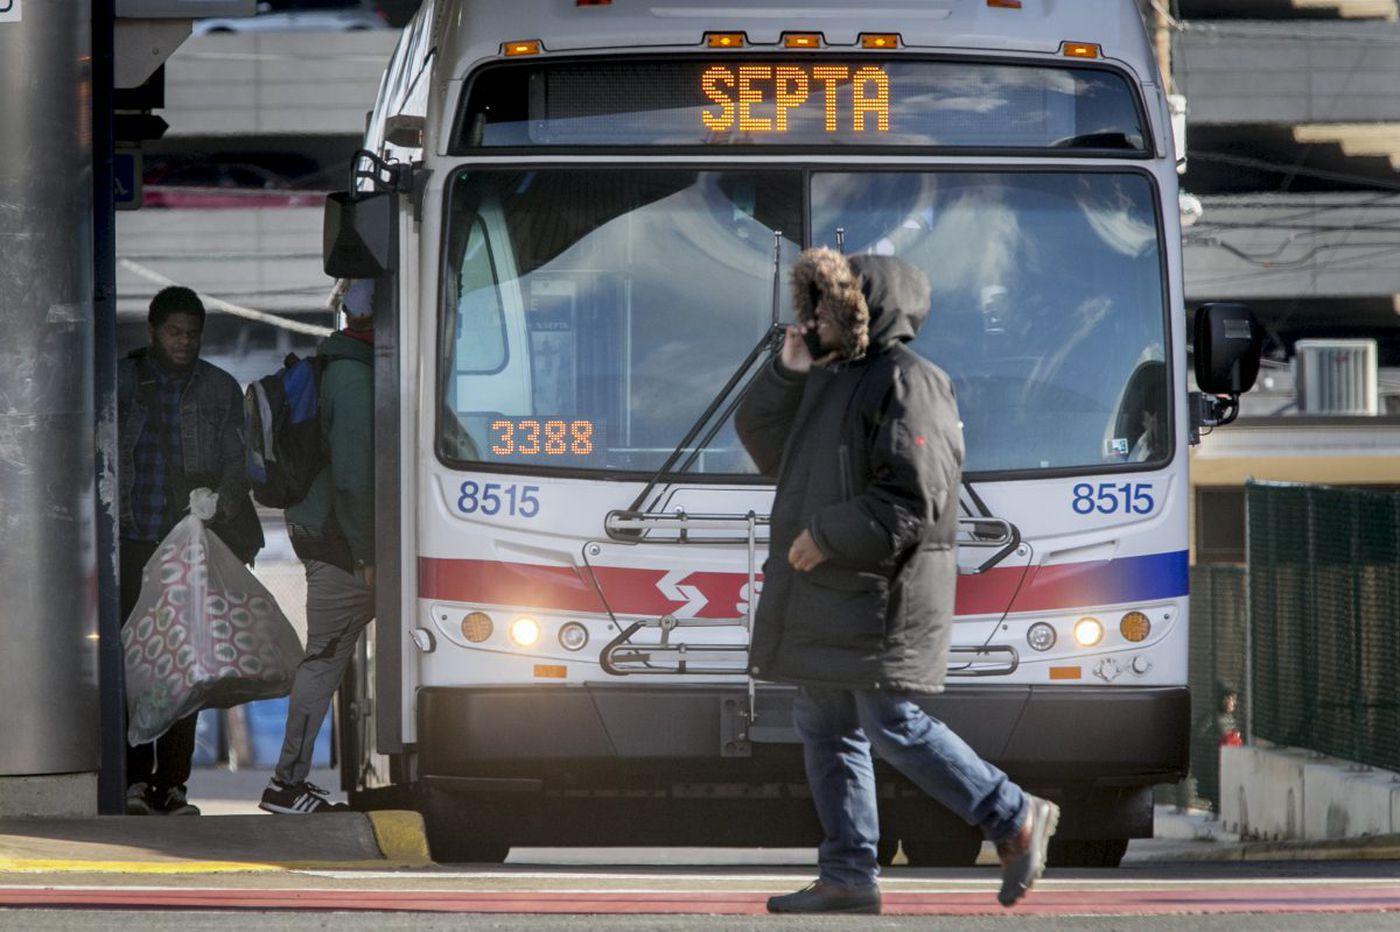 Here are your public transit options on New Year's Eve